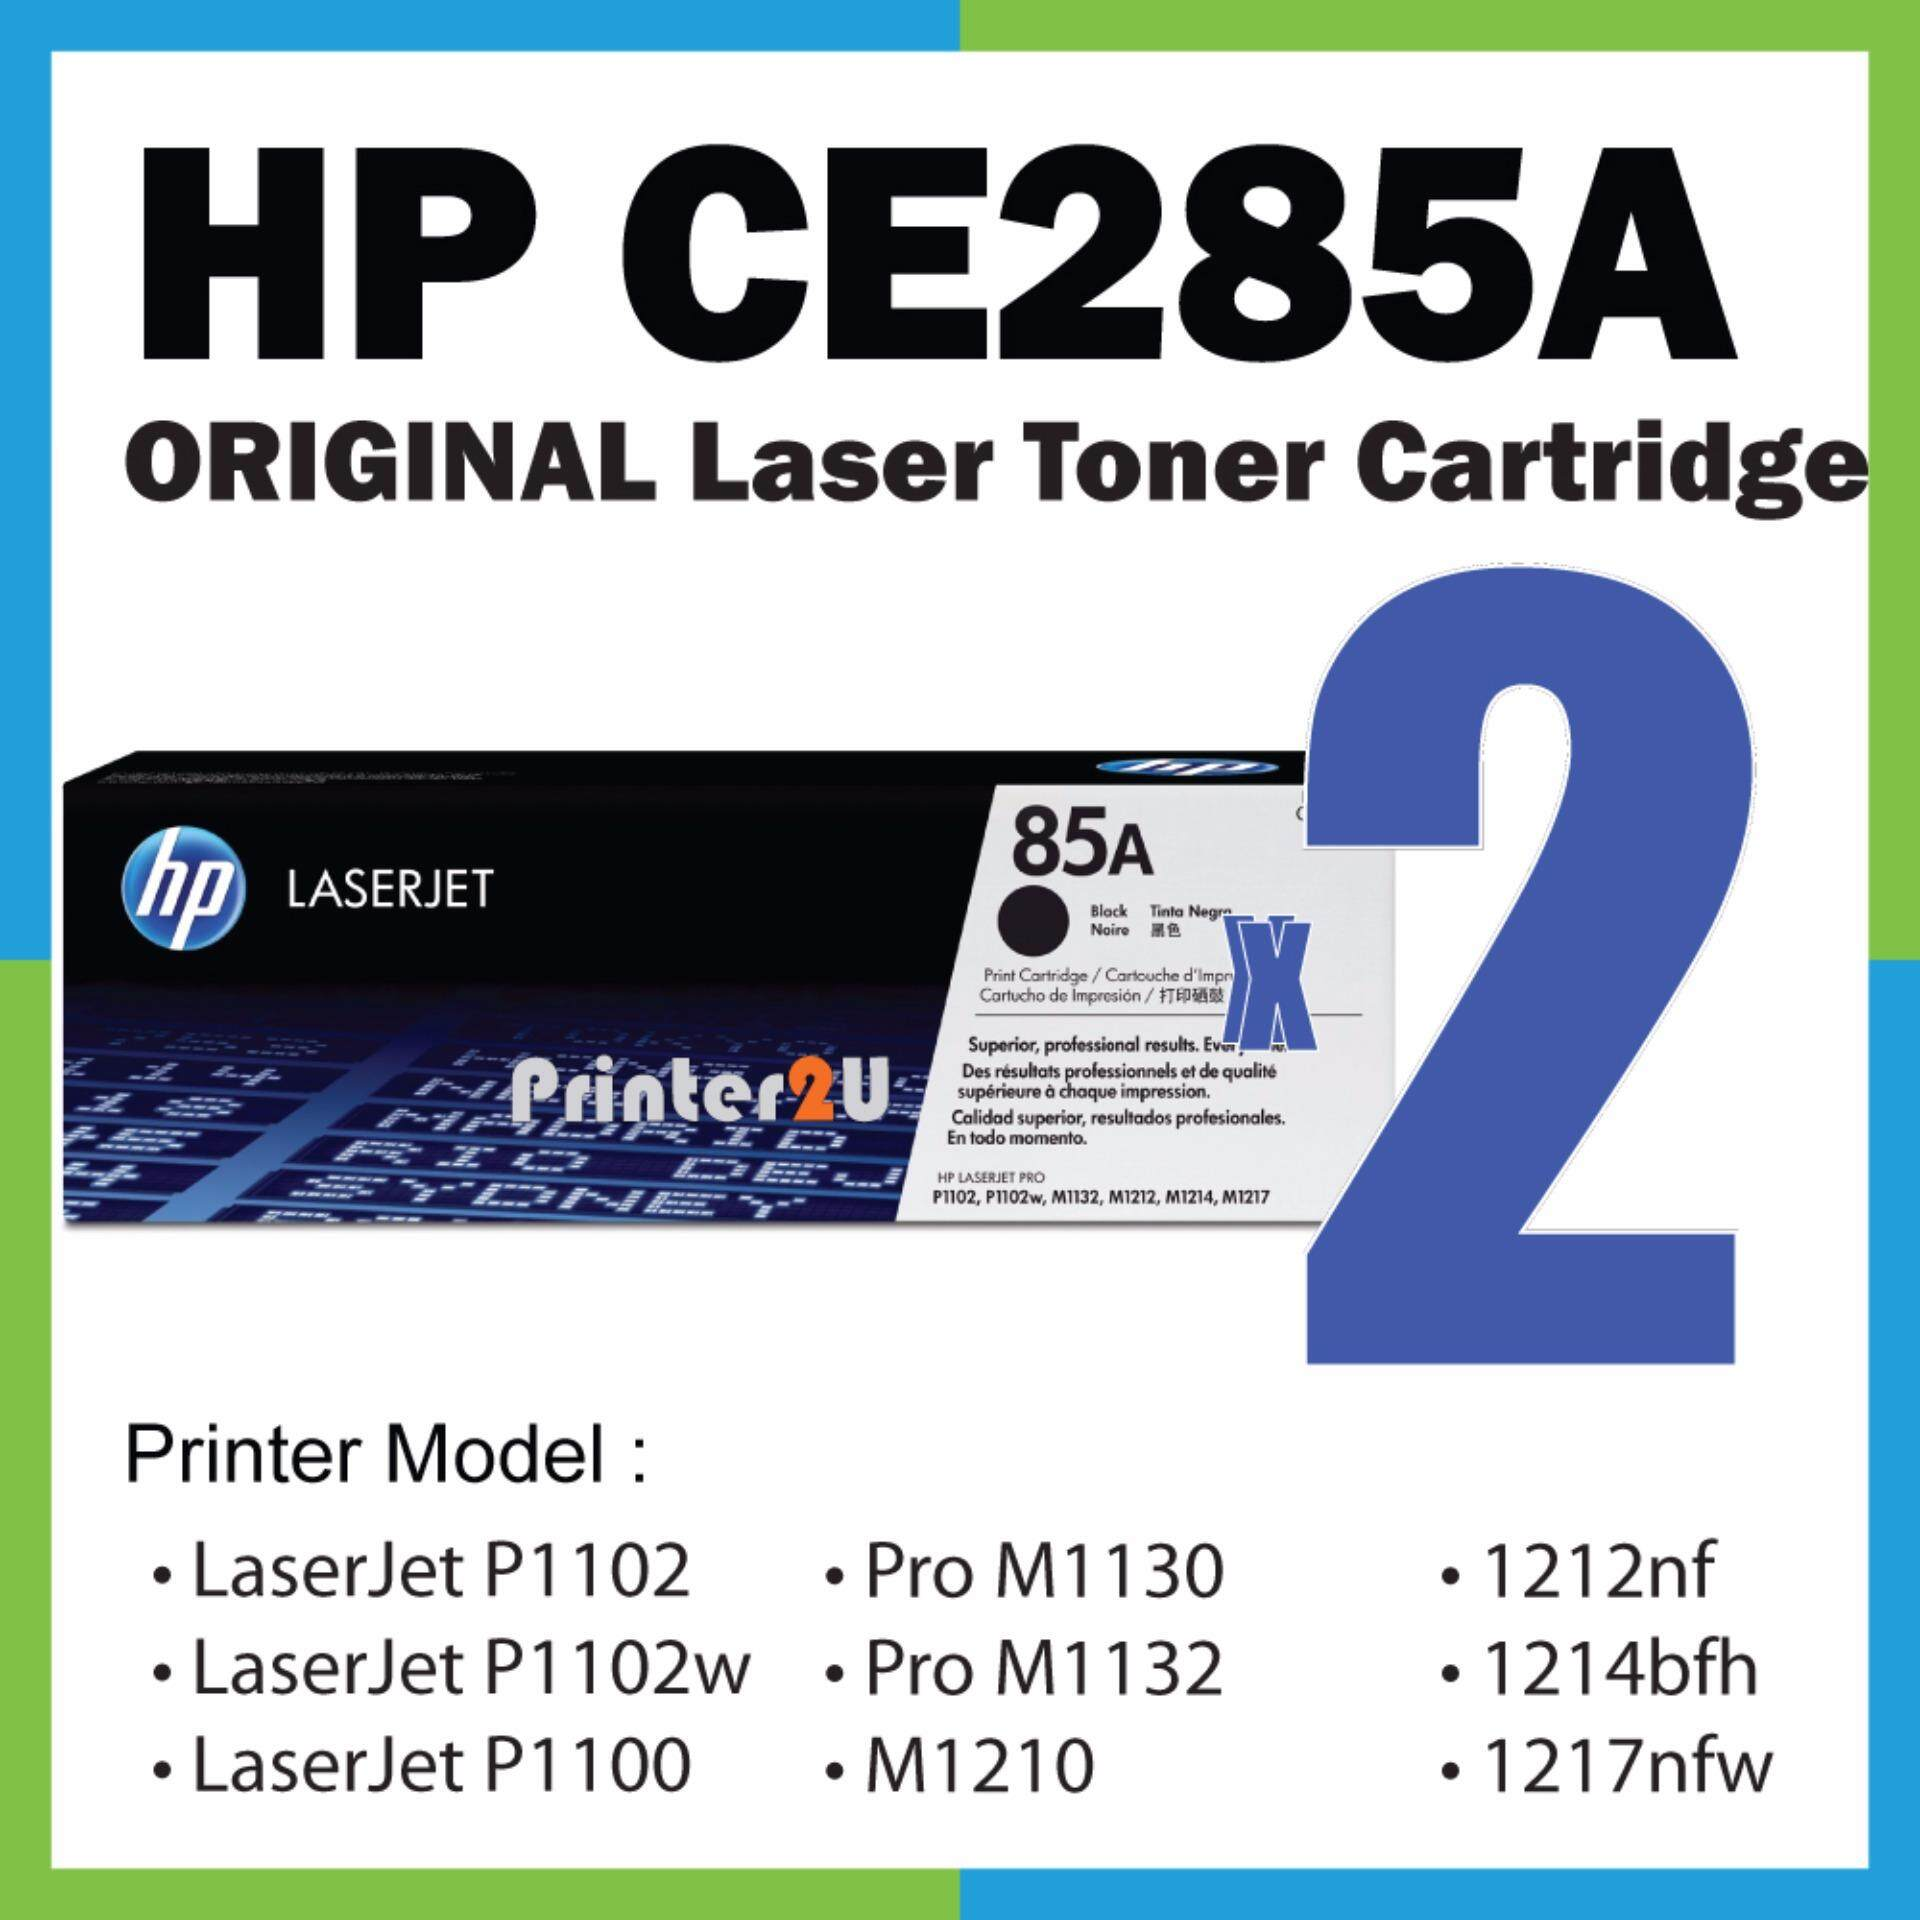 Buy Sell Cheapest 2 Unit Hp Best Quality Product Deals Malaysian 678 Black Ink Catridge Cz107aa Original Units Laser Toner Cartridge Ce285a 85a